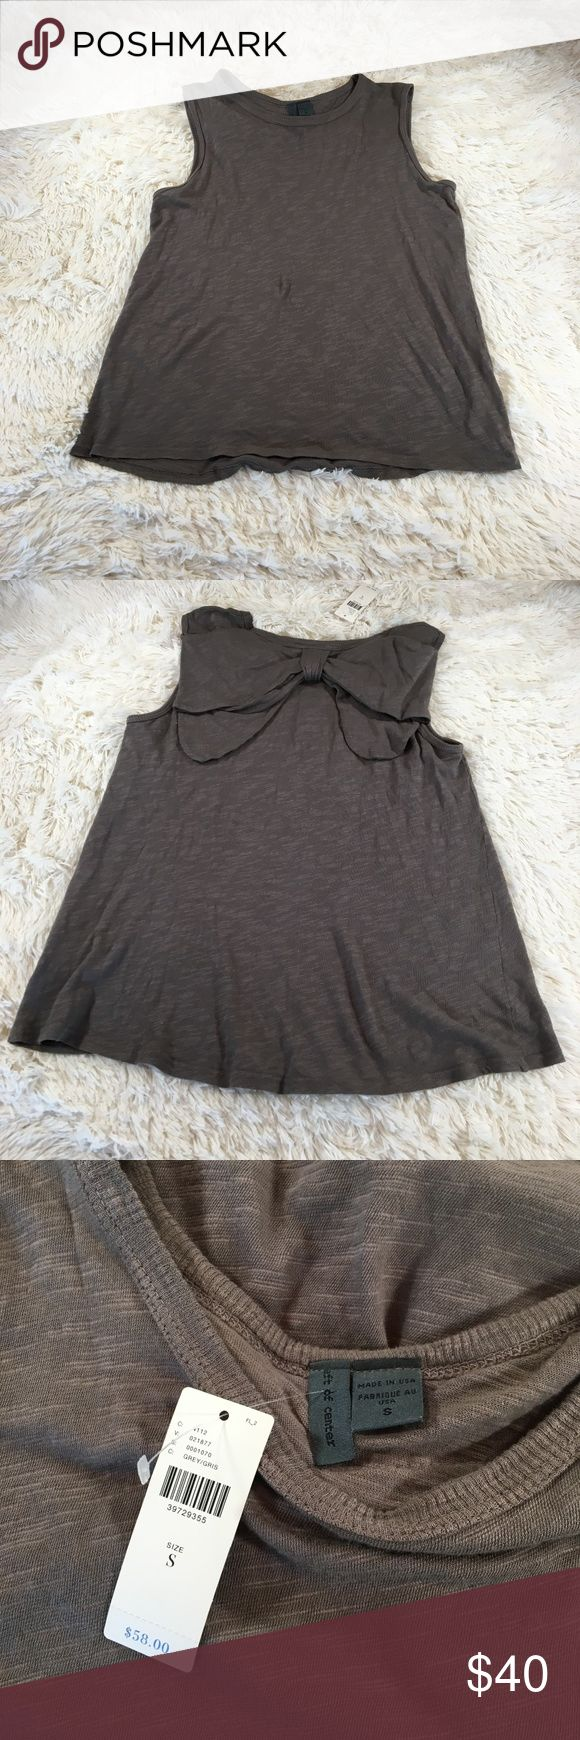 NWT Anthropologie Left of Center Bow Back Tank NWT Anthropologie Left of Center Bow Back Tank Size: small Color: Brown   393/10 Anthropologie Tops Tank Tops